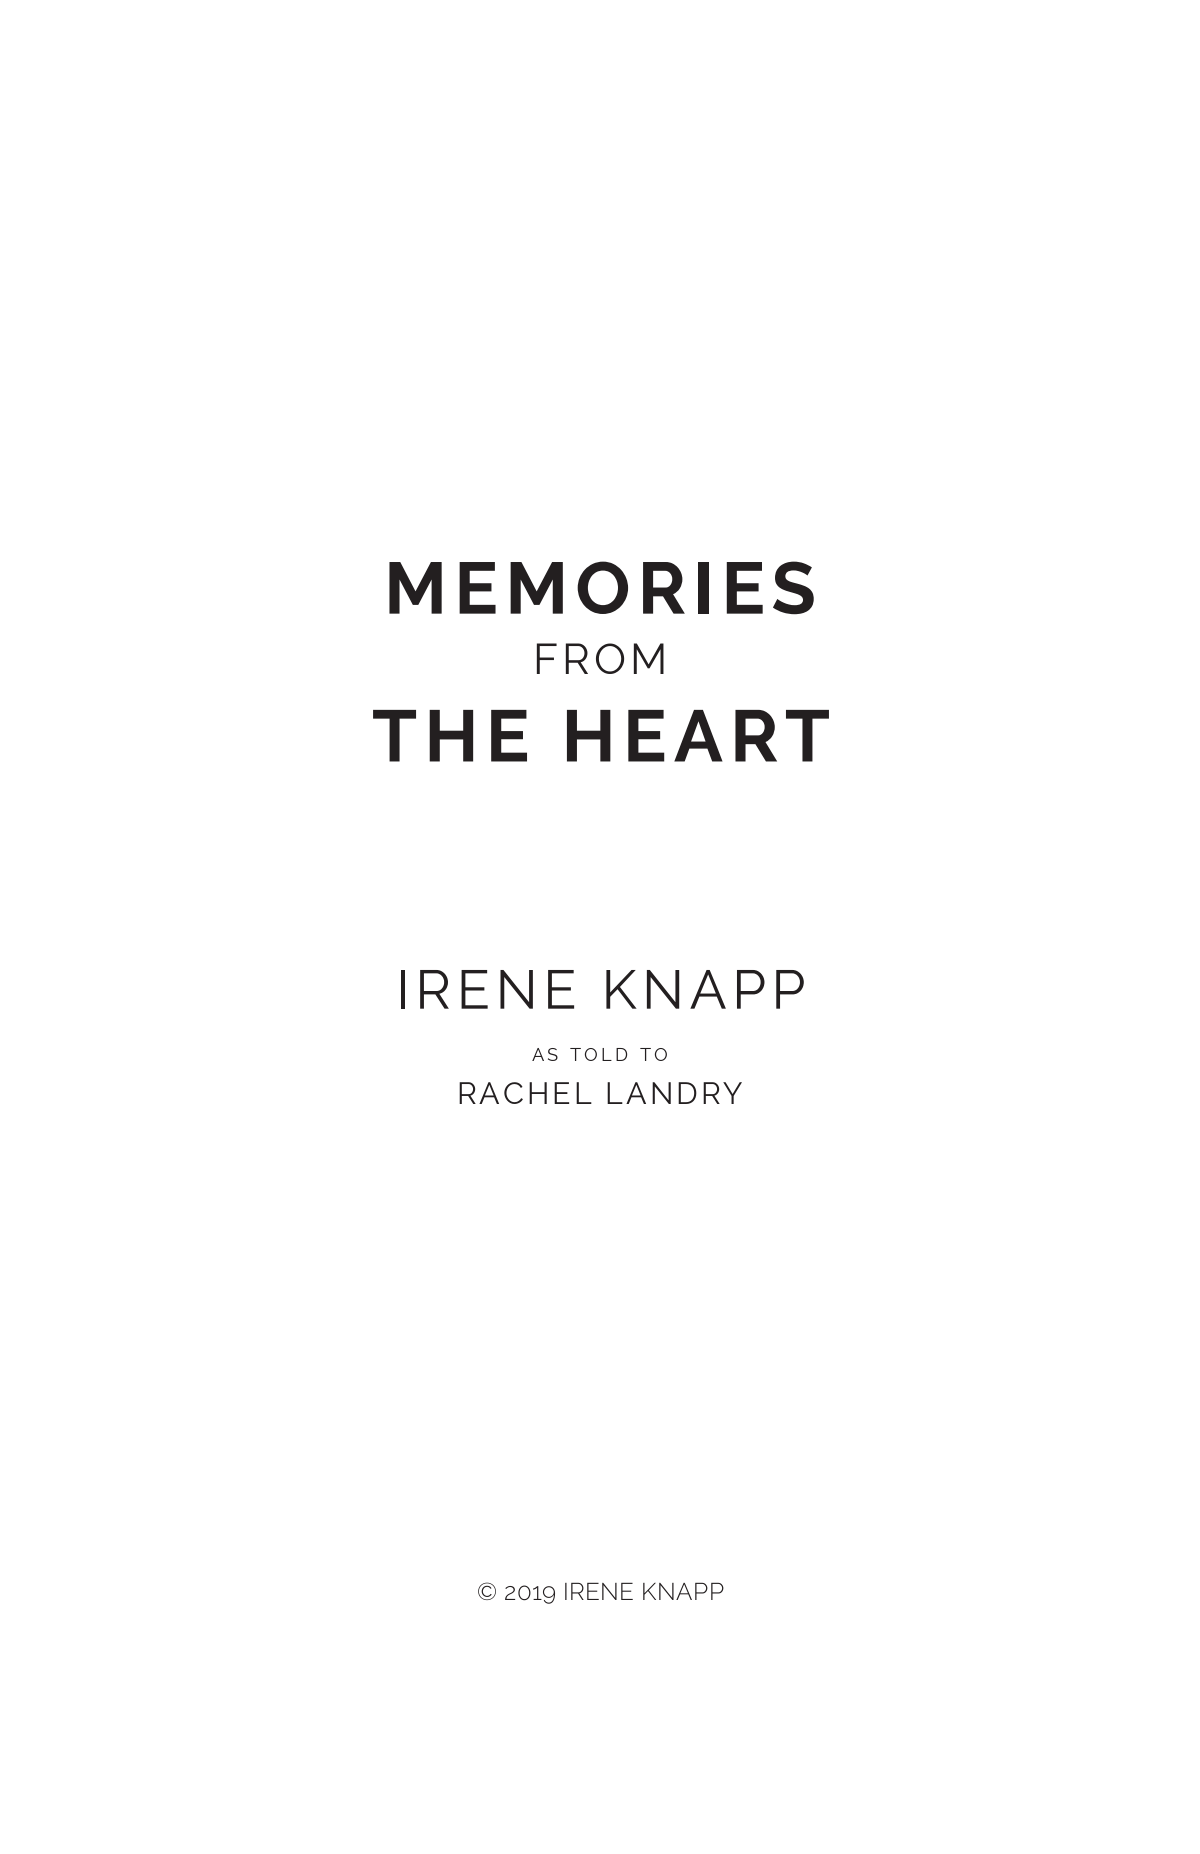 Memories From The Heart - Format the book